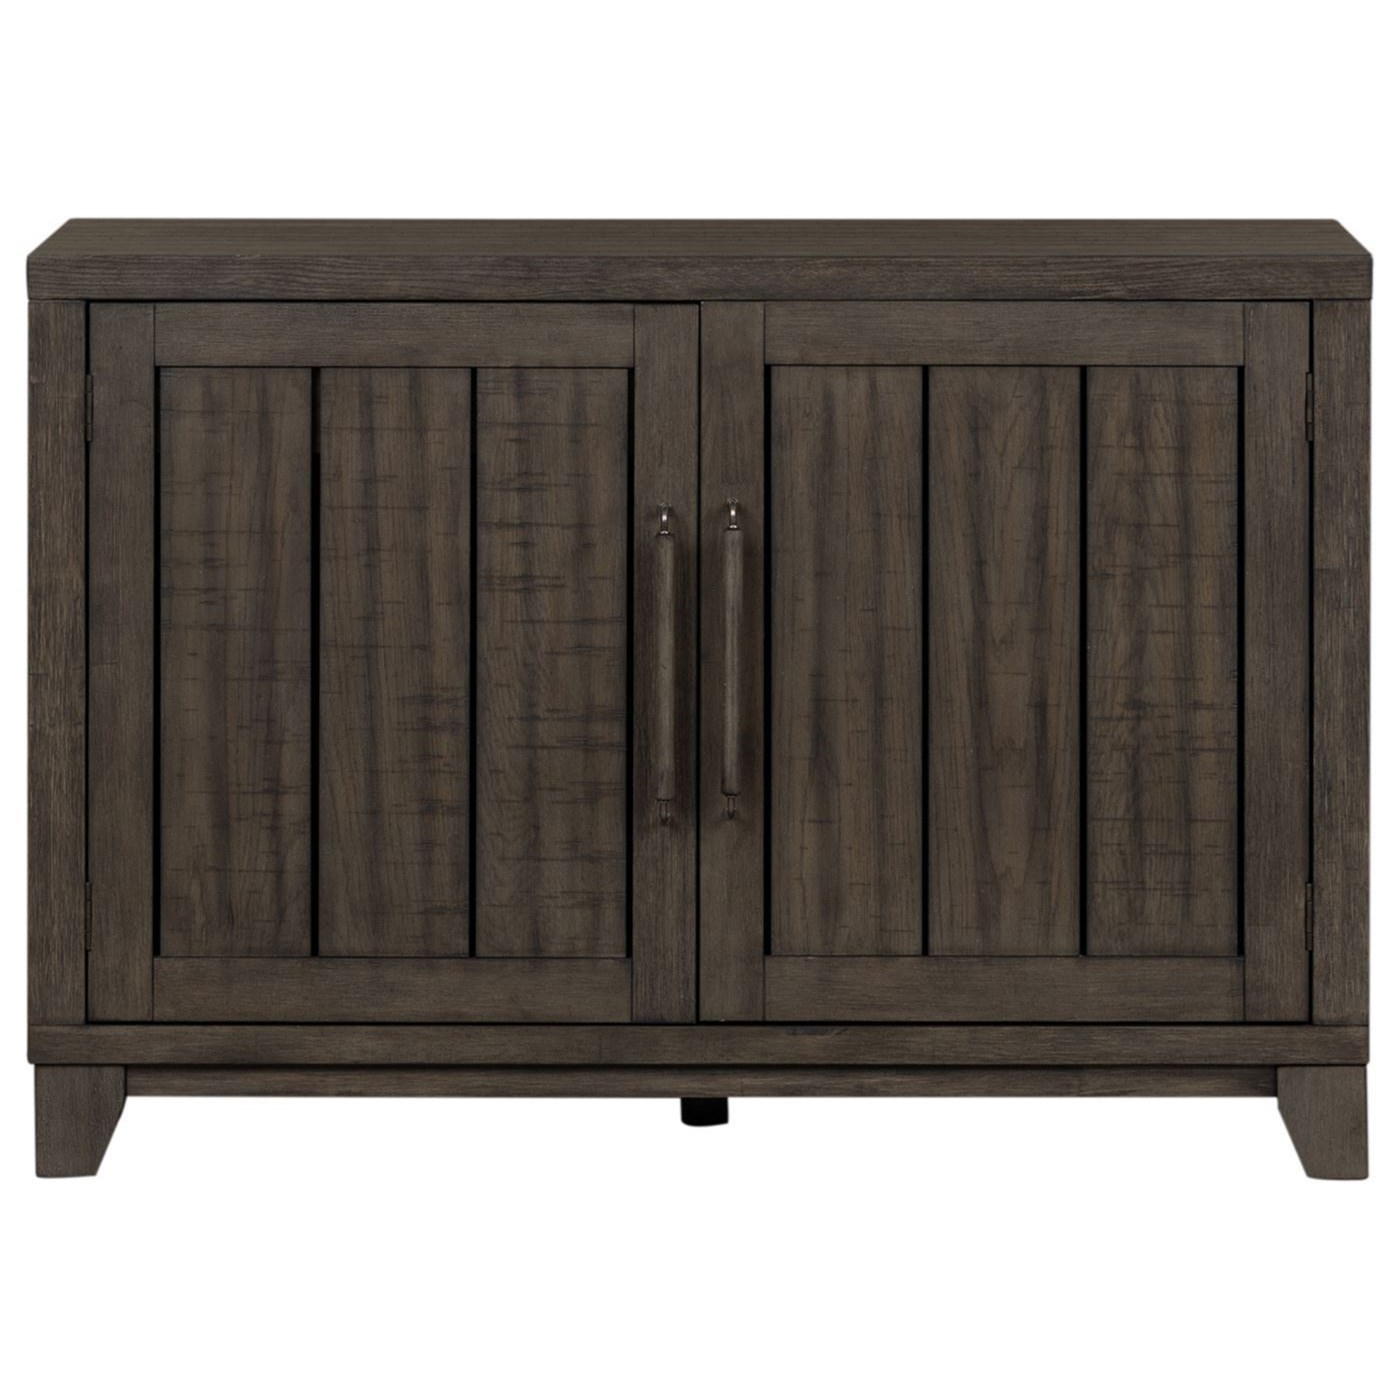 Crescent Creek Buffet by Liberty Furniture at Northeast Factory Direct